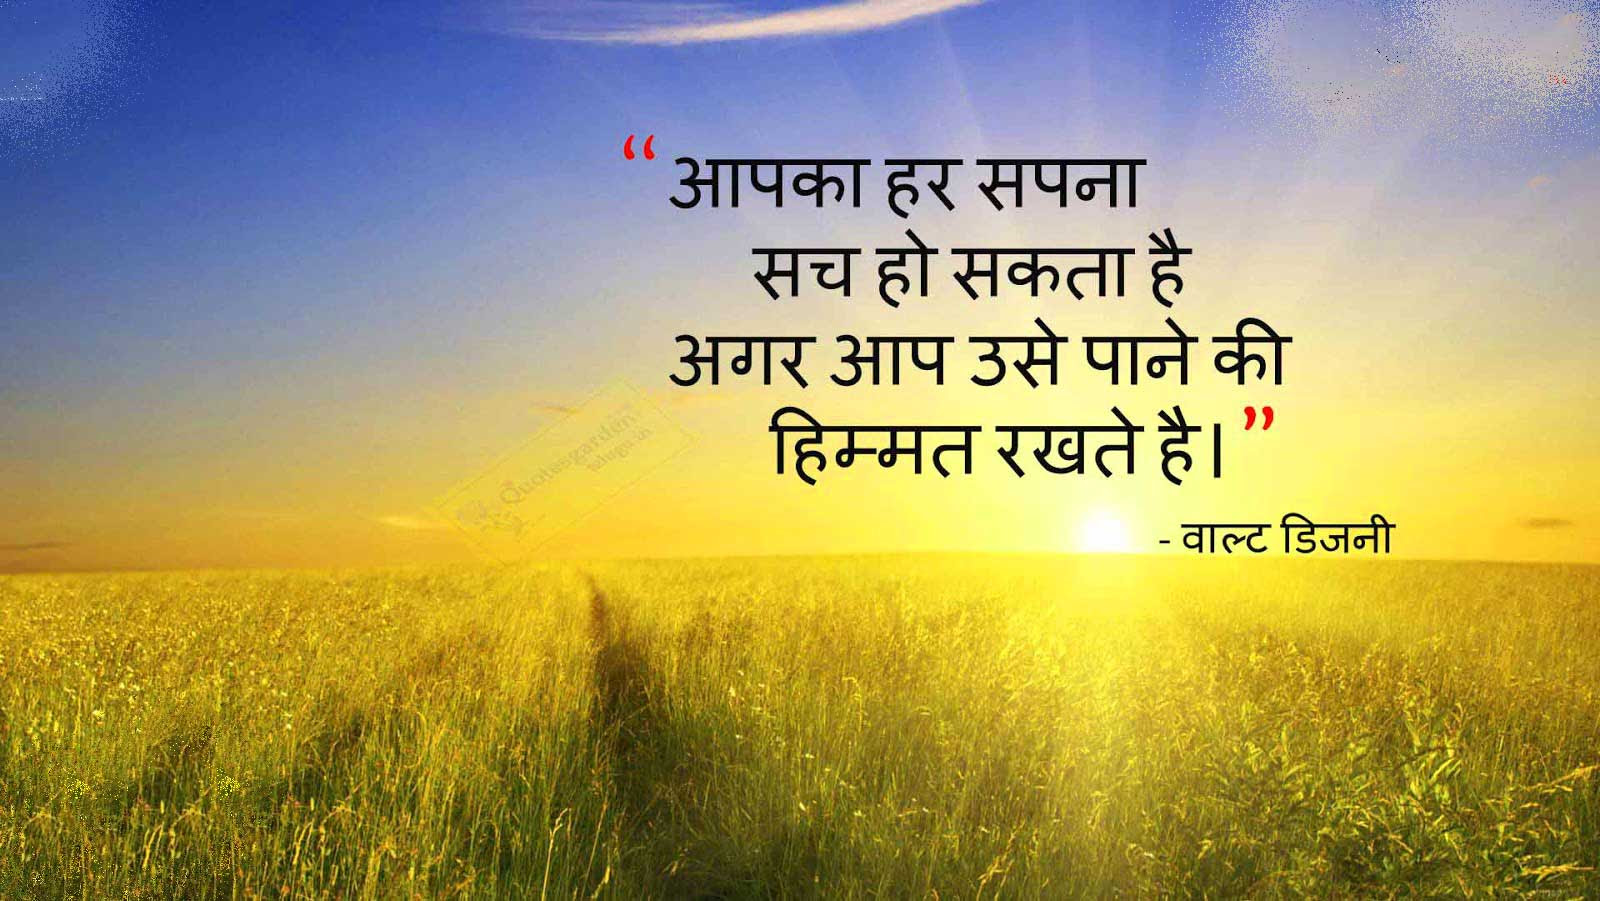 126 Hindi Good Morning Quotes With Images